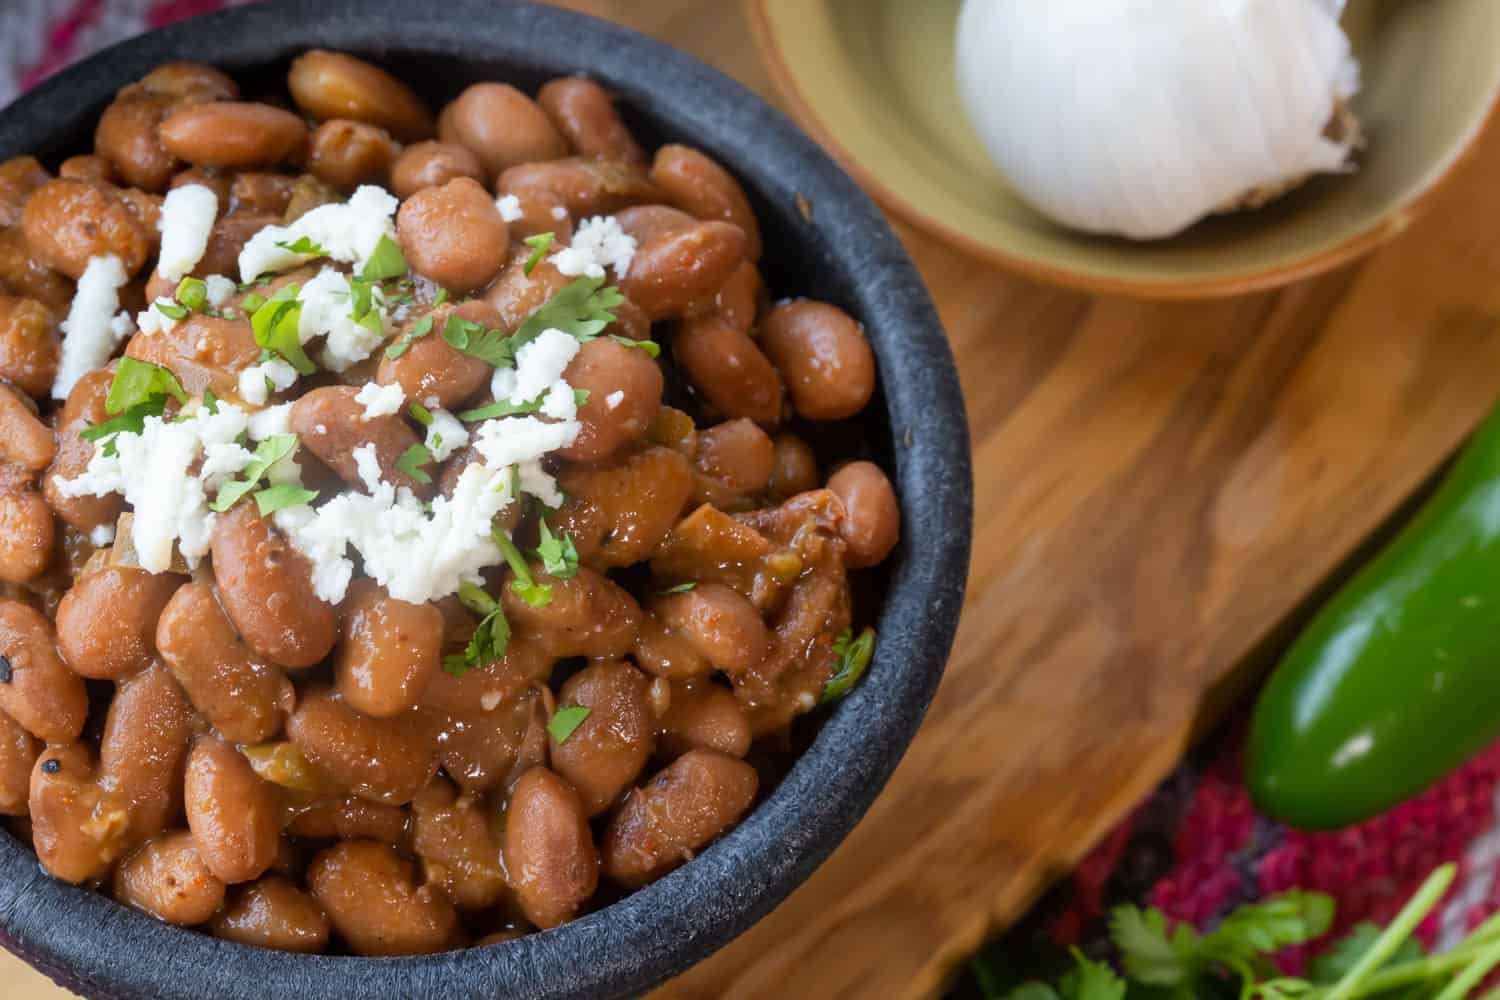 A bowl of glistening cooked pinto beans topped with cilantro and crema.